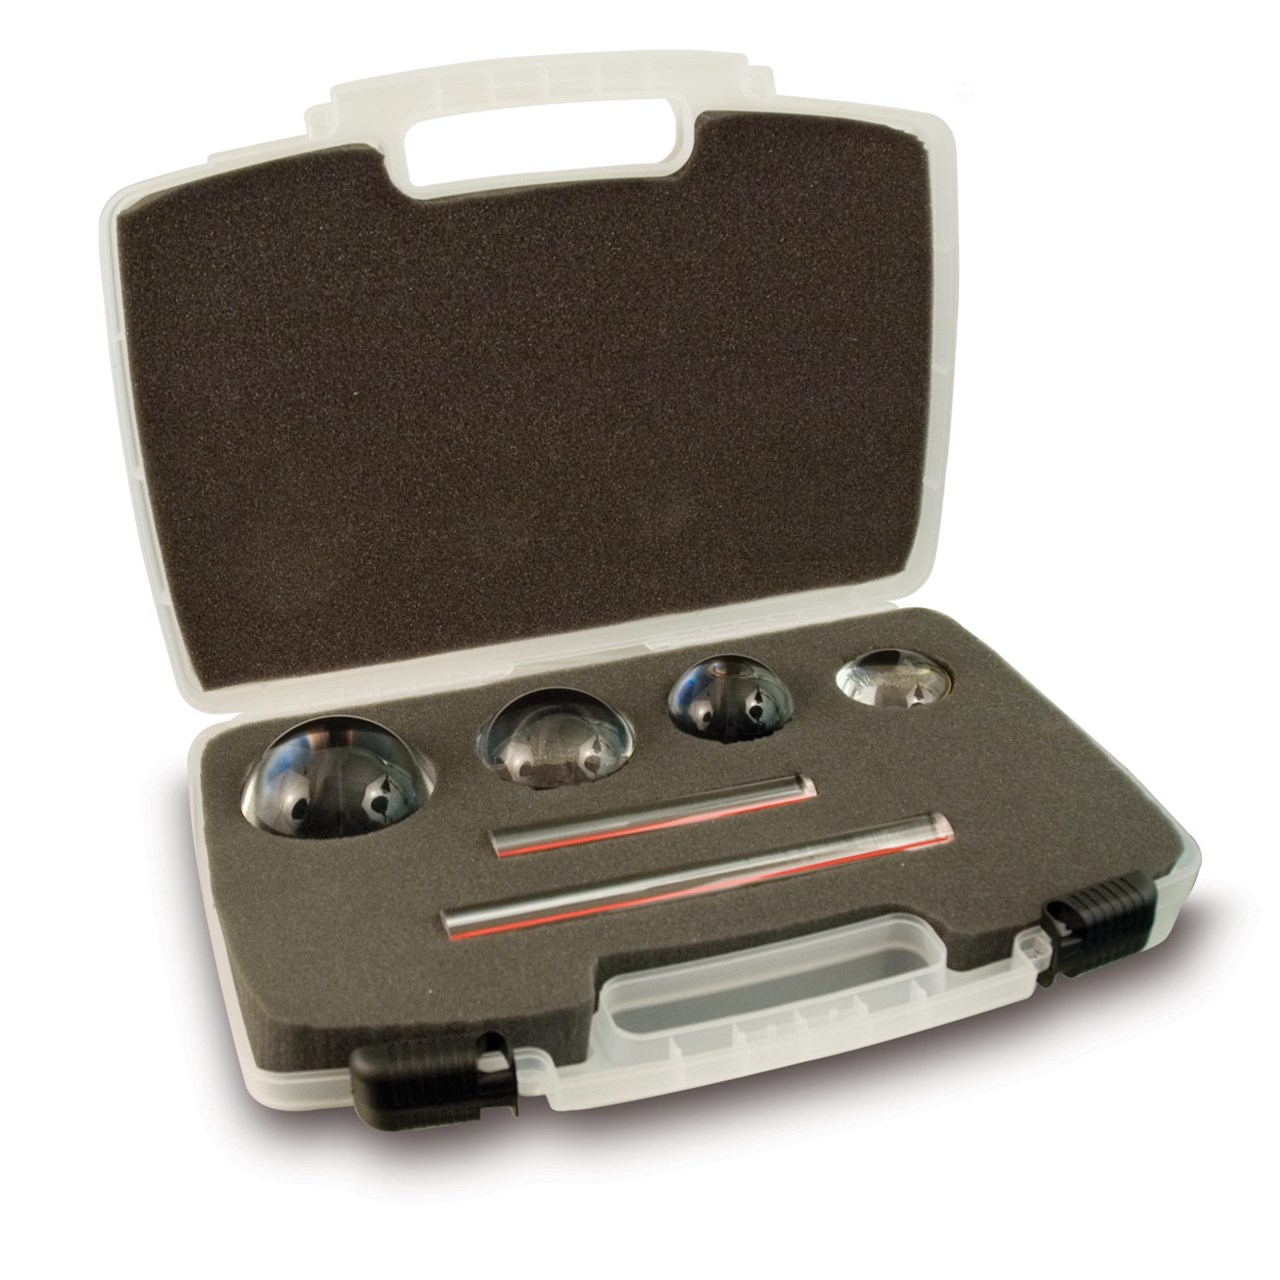 Reizen Reading Magnifier Kit with 4 Dome Magnifiers and 2 EZ Magnibars